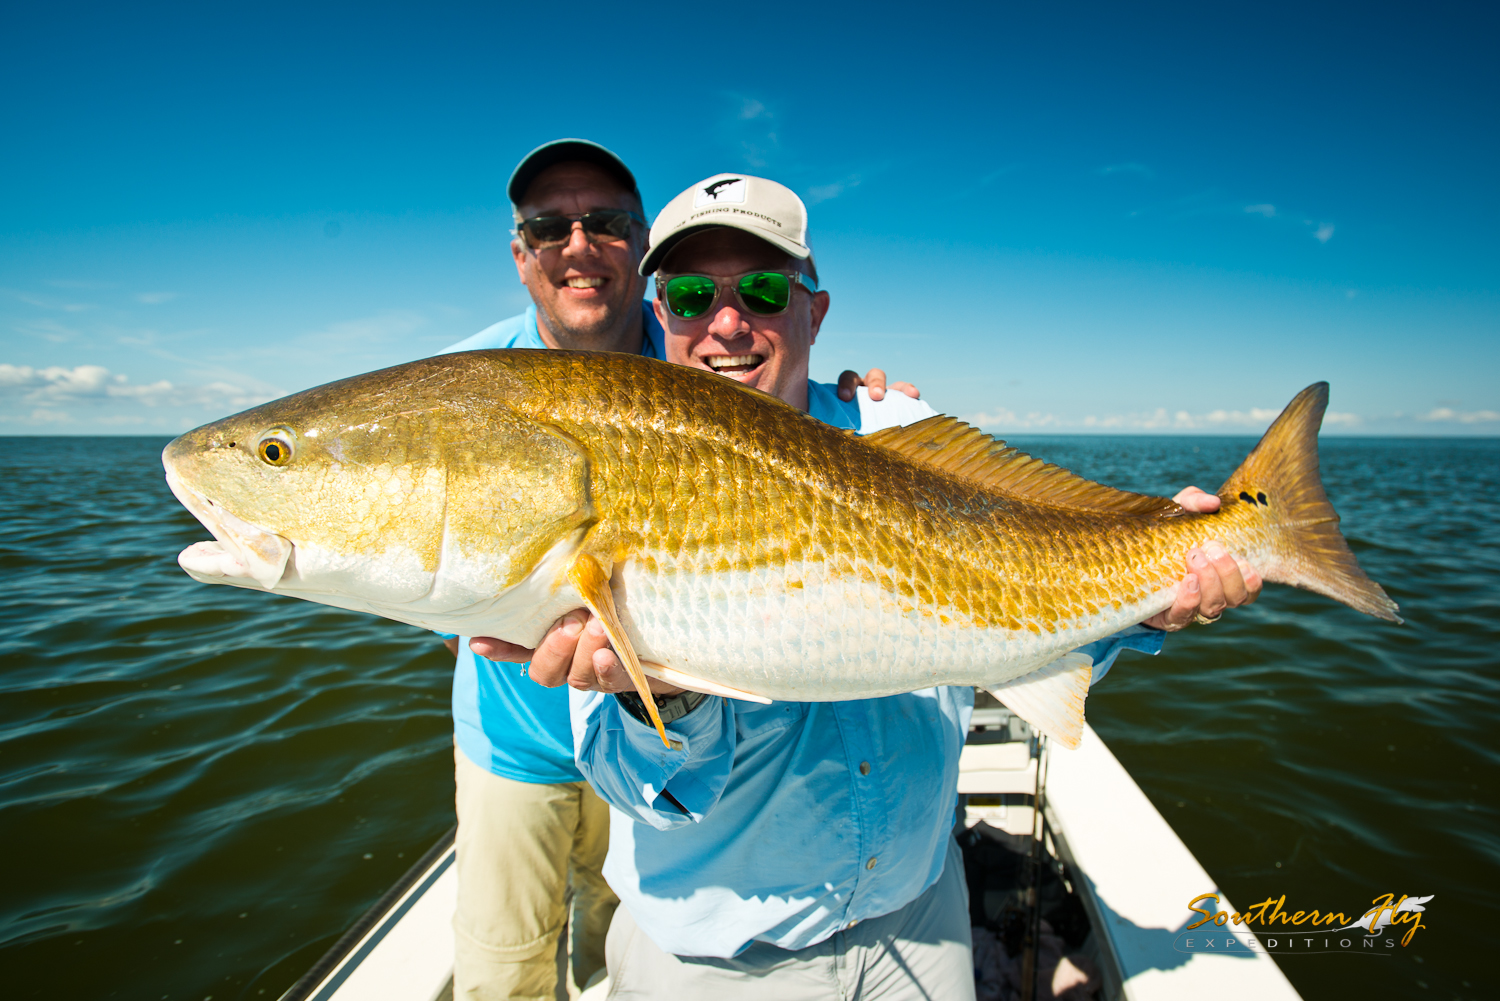 Light Tackle Guide New Orleans Southern Fly Expeditions